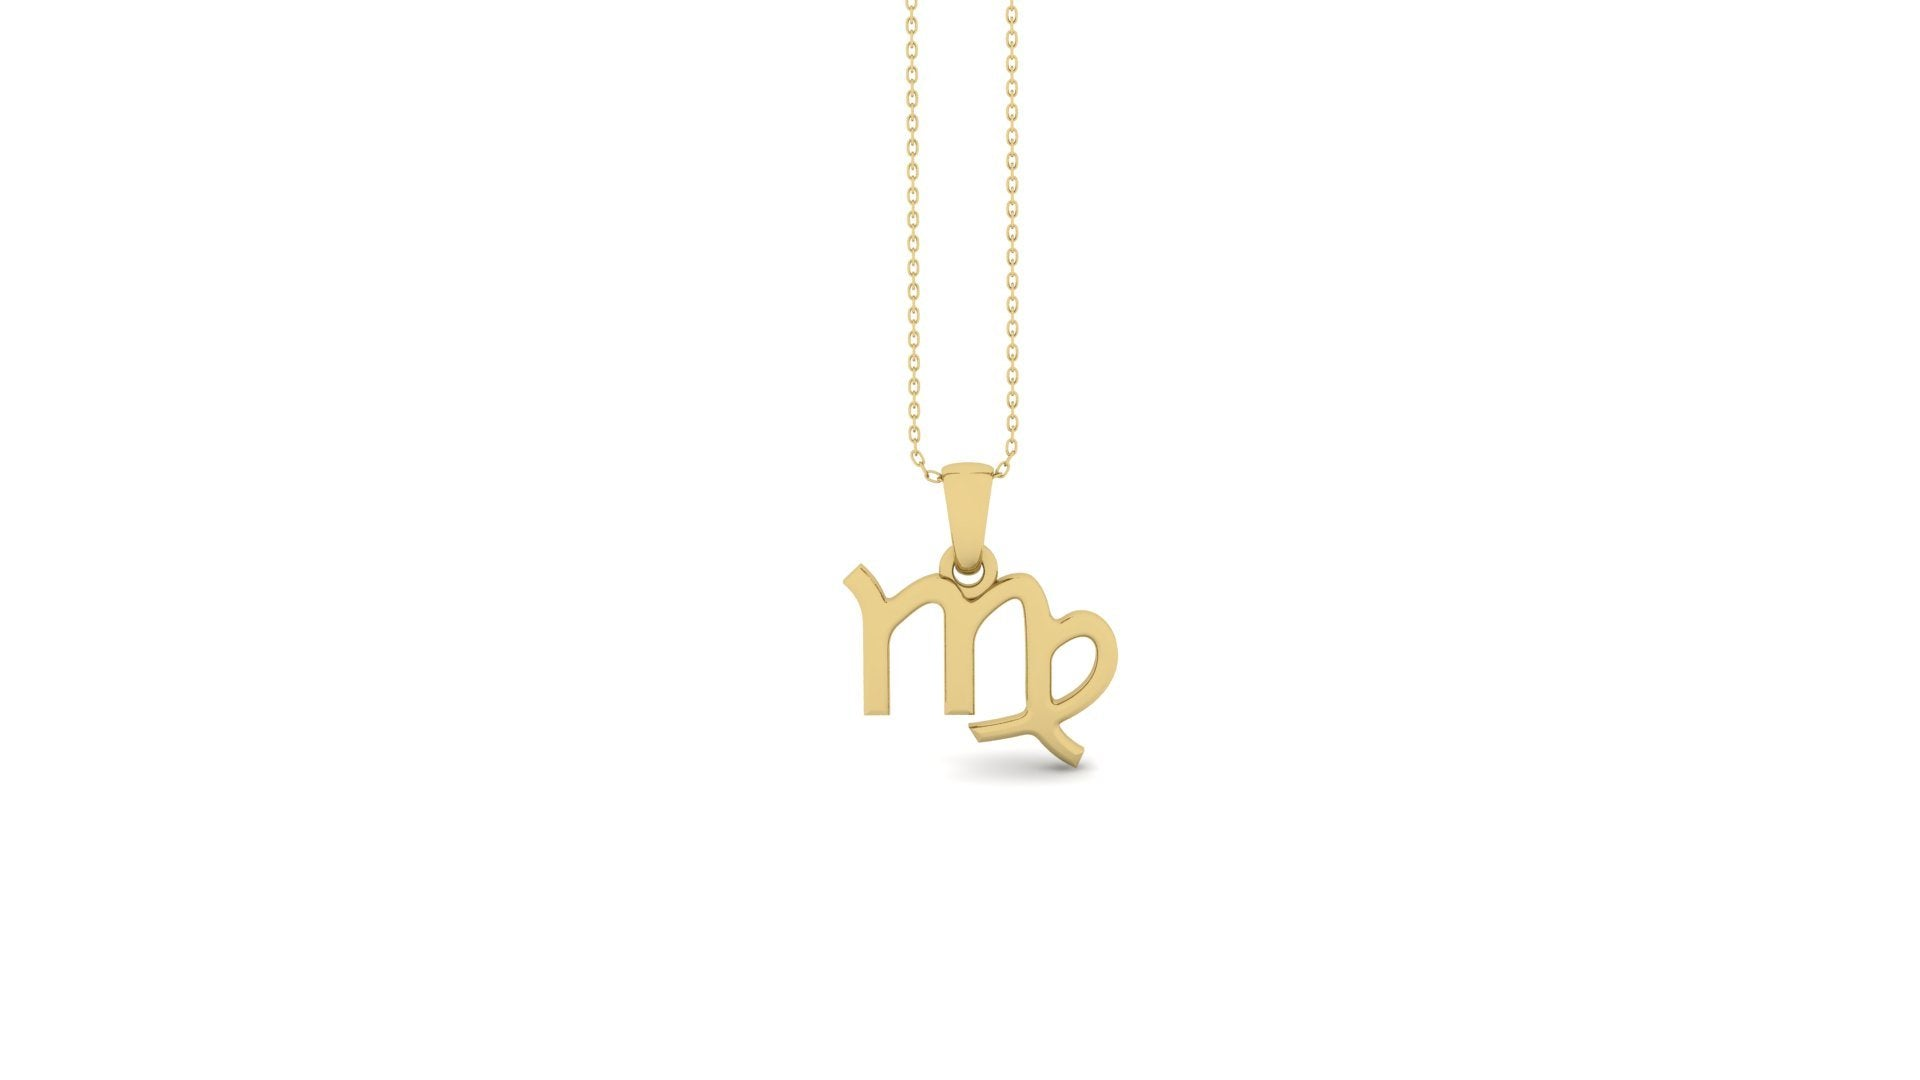 [Zodiac Rings][Zodiac necklace][Zodiac earrings][Zodiac pendant][Zodiac jewelry][Zodiac accesories] [Zodiac clothing] [Zodiac gifts][Zodiacaa][constellation][Fancy Acholonu][Birthstone] [Birthday gifts] [horoscopes] [Zodiacaa by Fancy] [Astrology signs] [